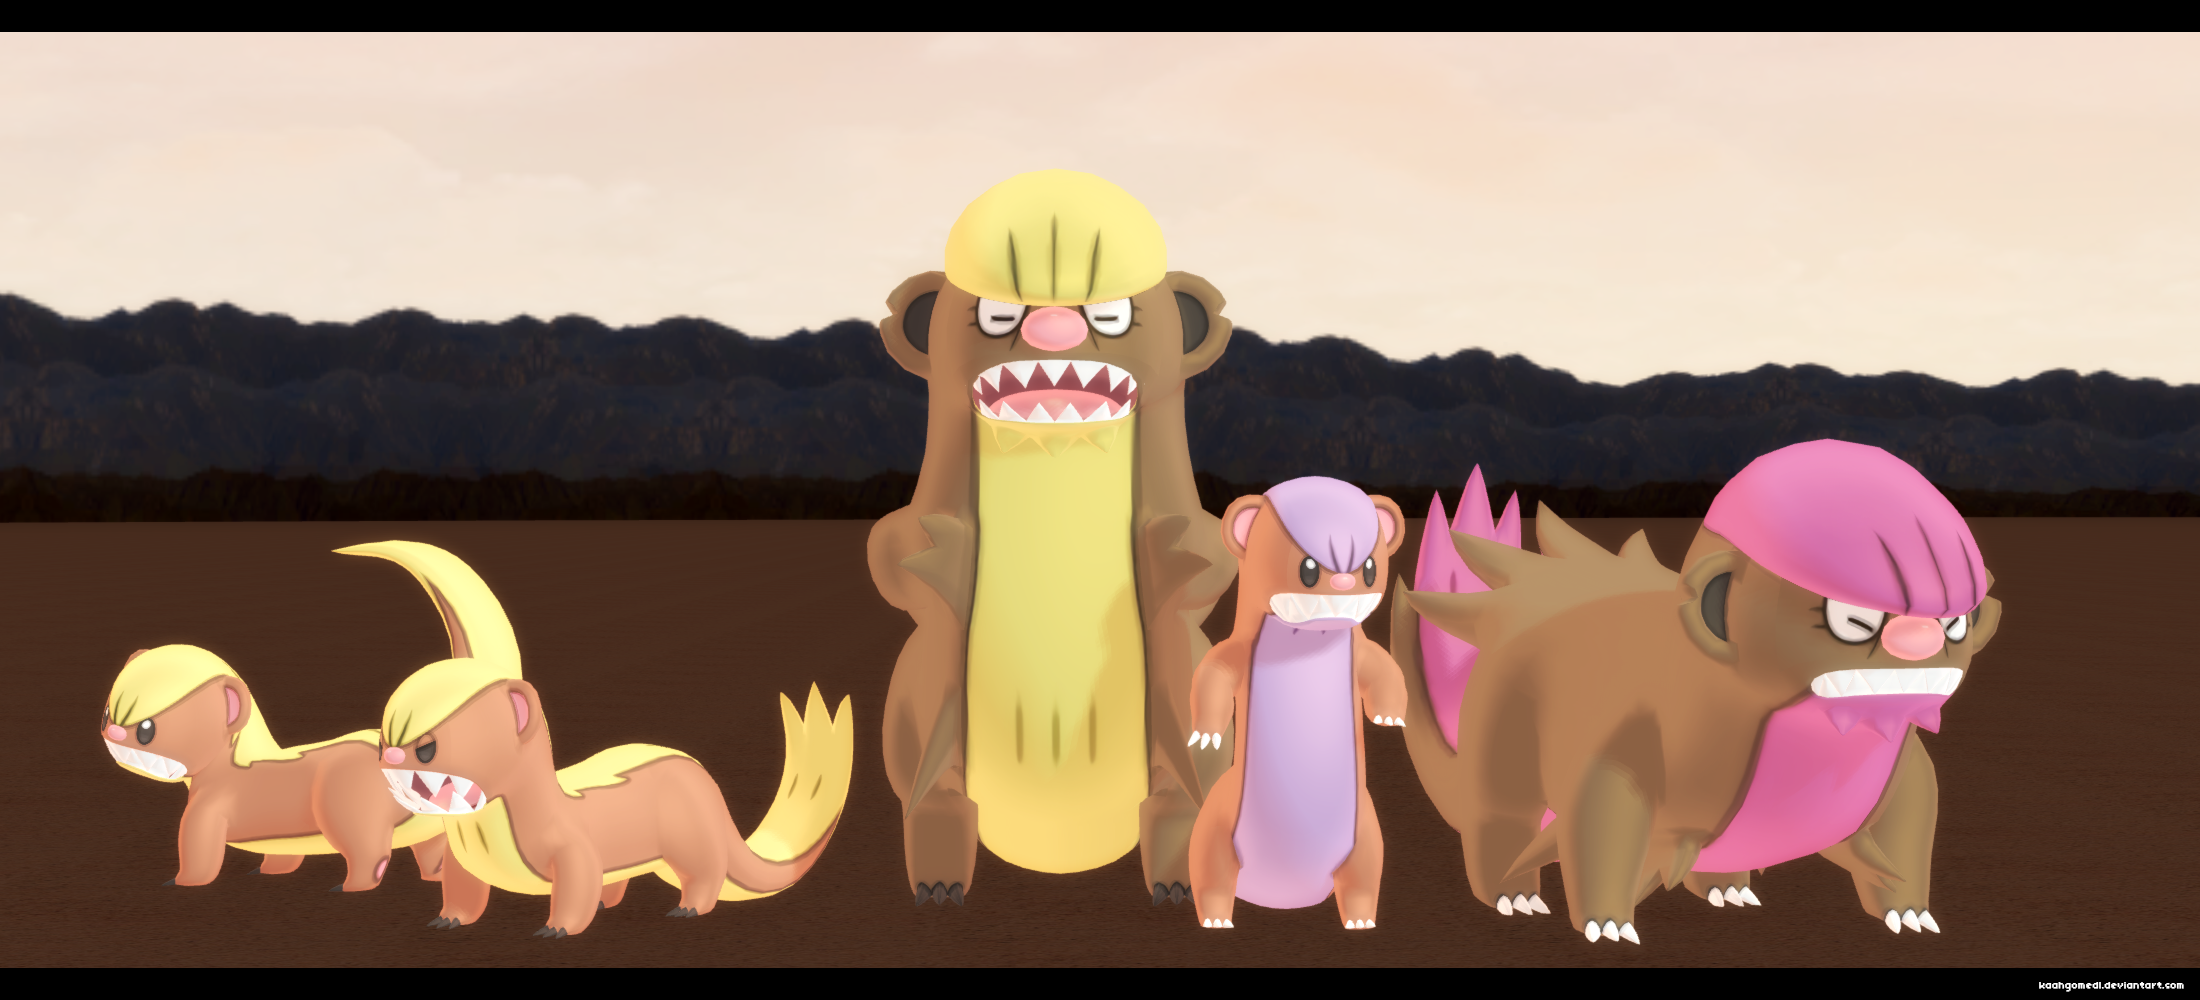 MMD Pokemon: Gumshoos Youngoos